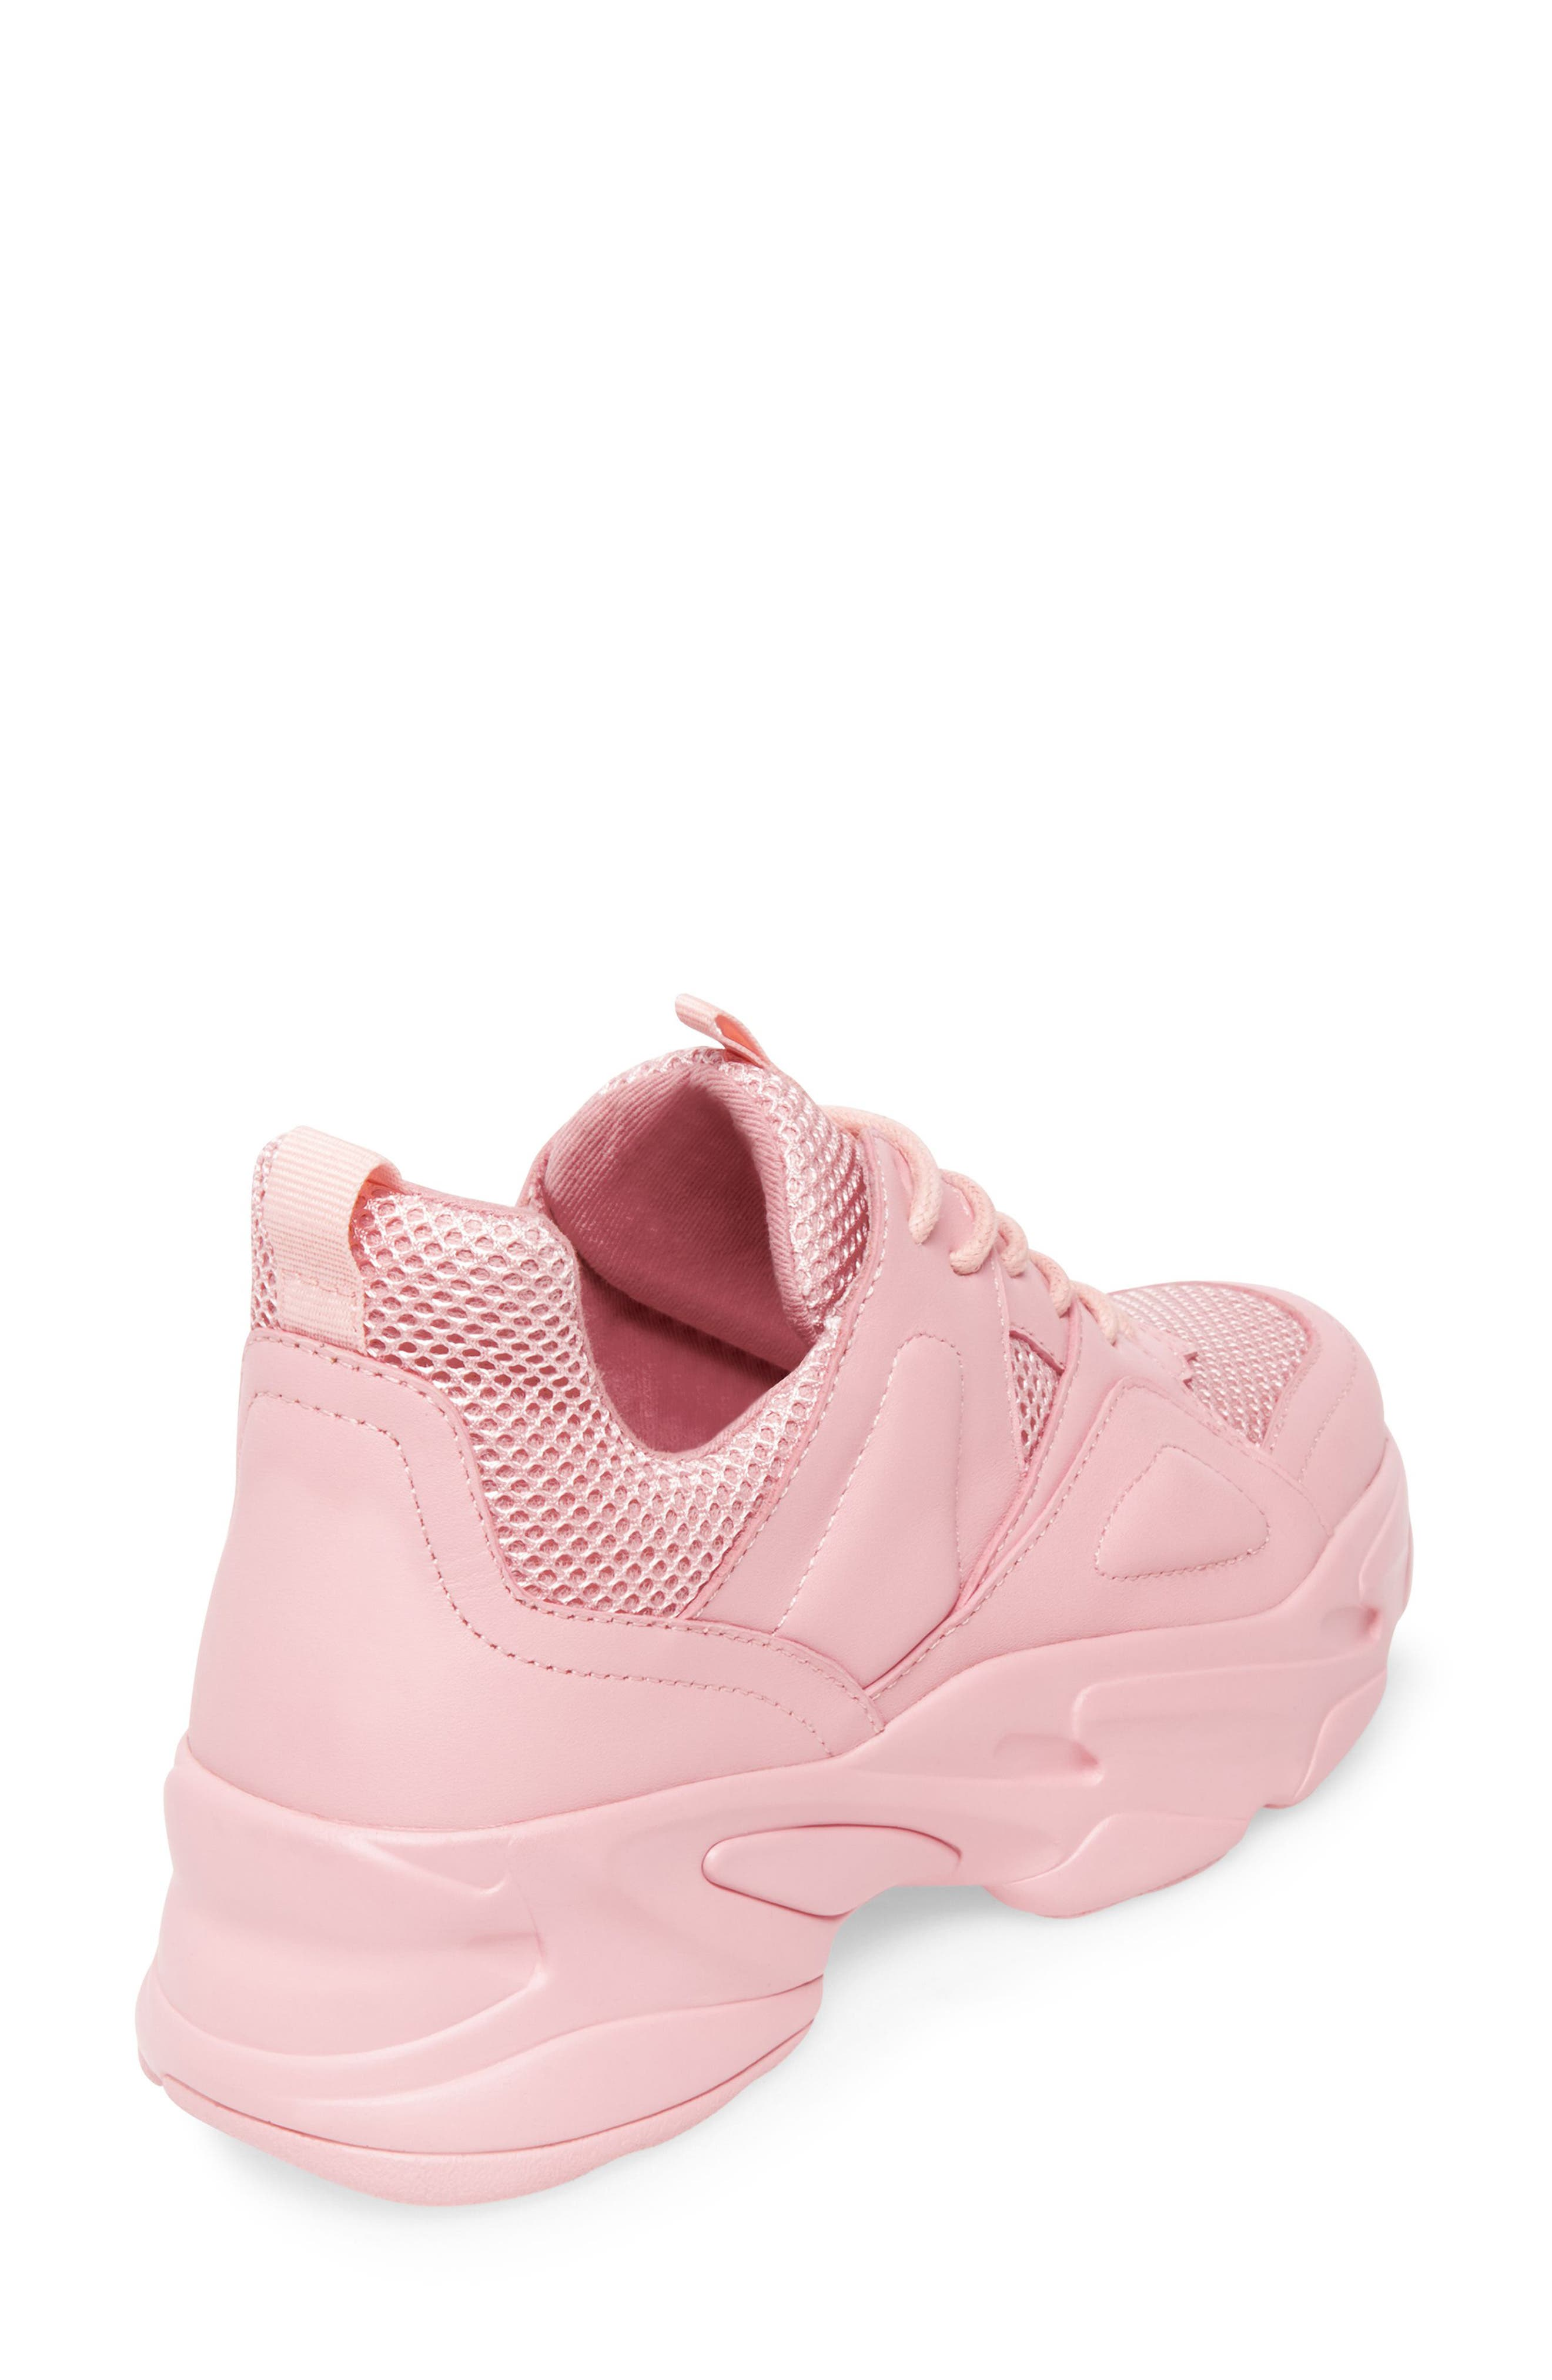 Movement Sneaker,                             Alternate thumbnail 2, color,                             PINK LEATHER